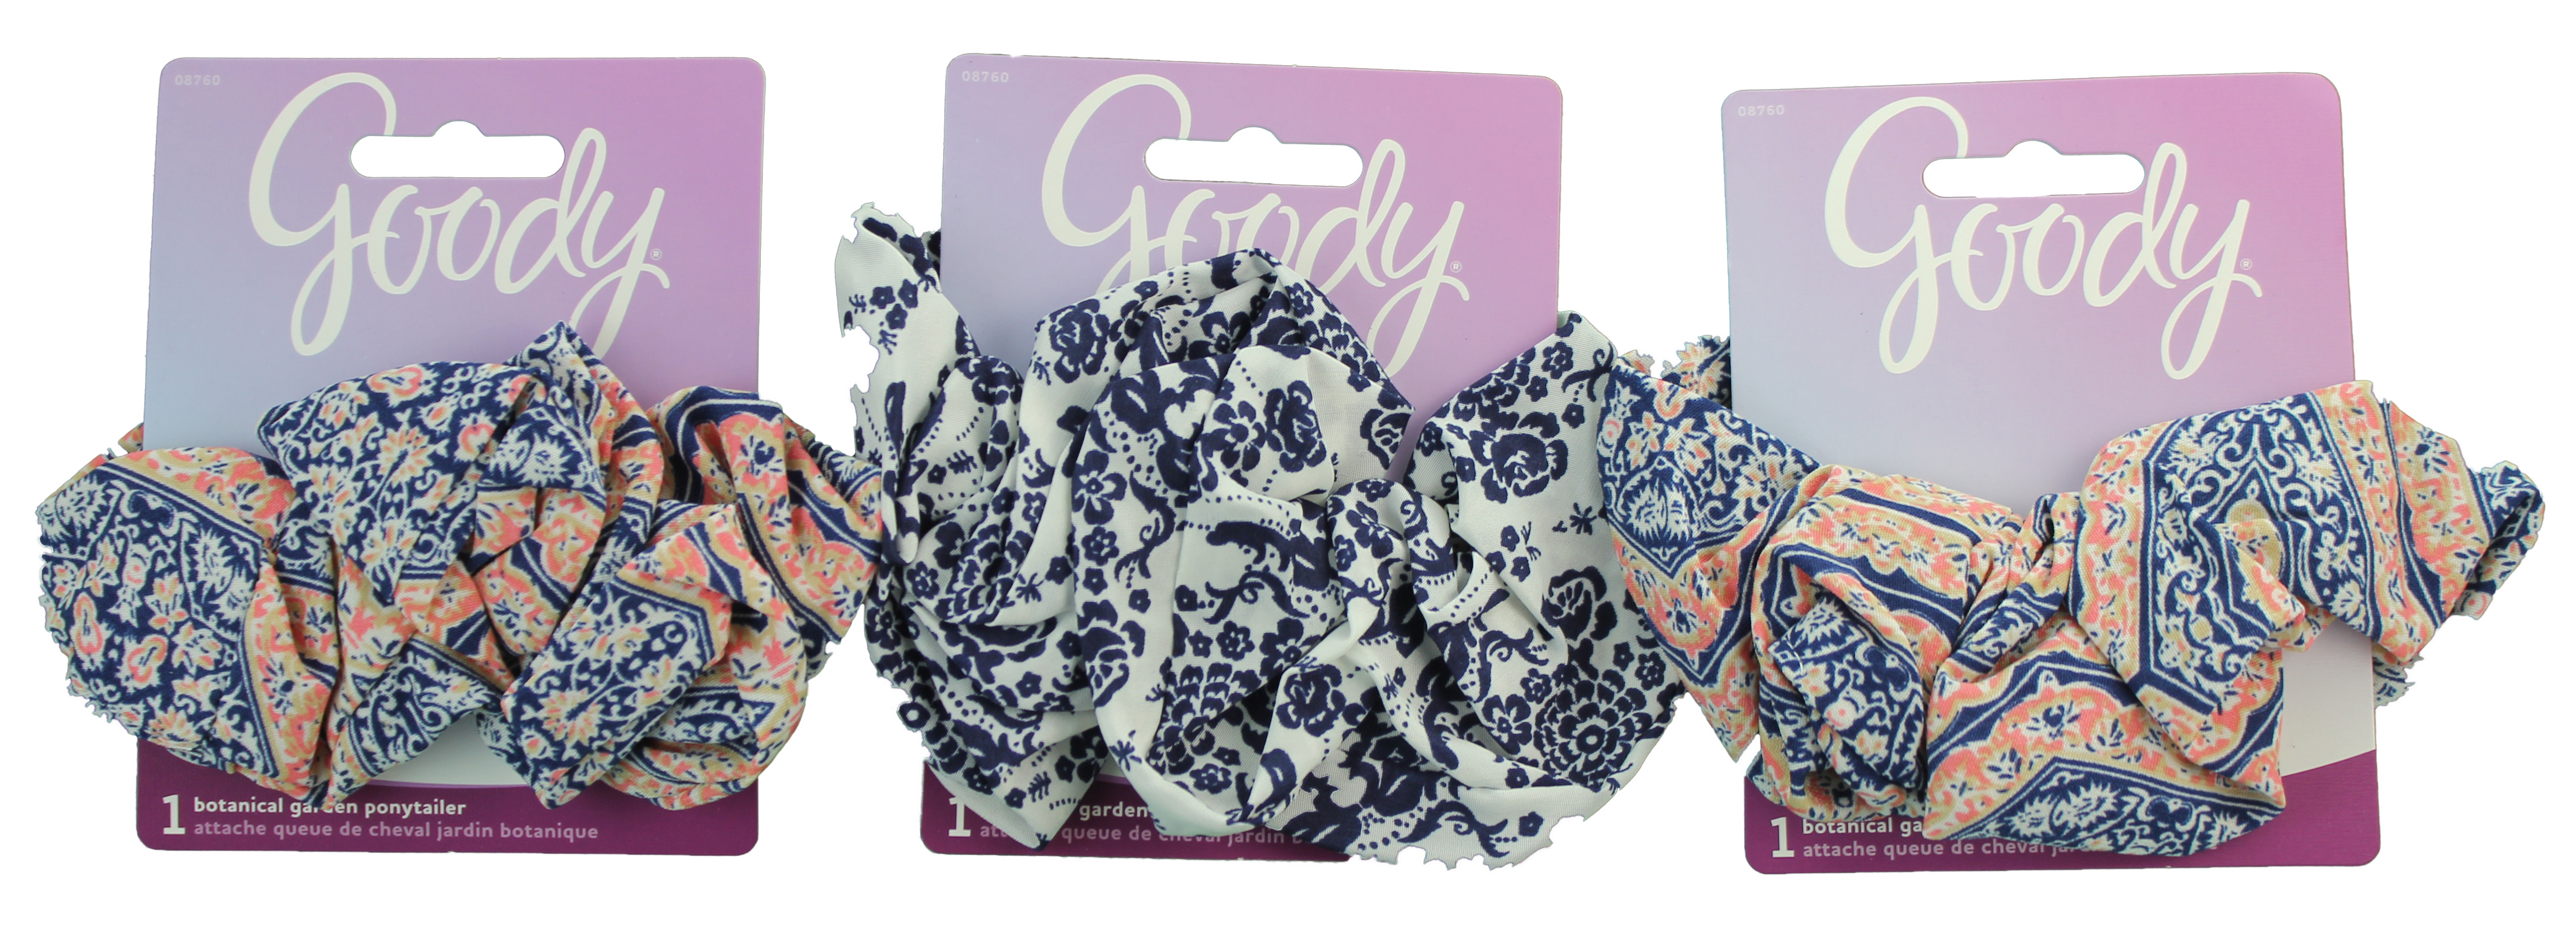 Goody Corporate Leisure Club Printed Ponytailer Scrunchy, 1 CT